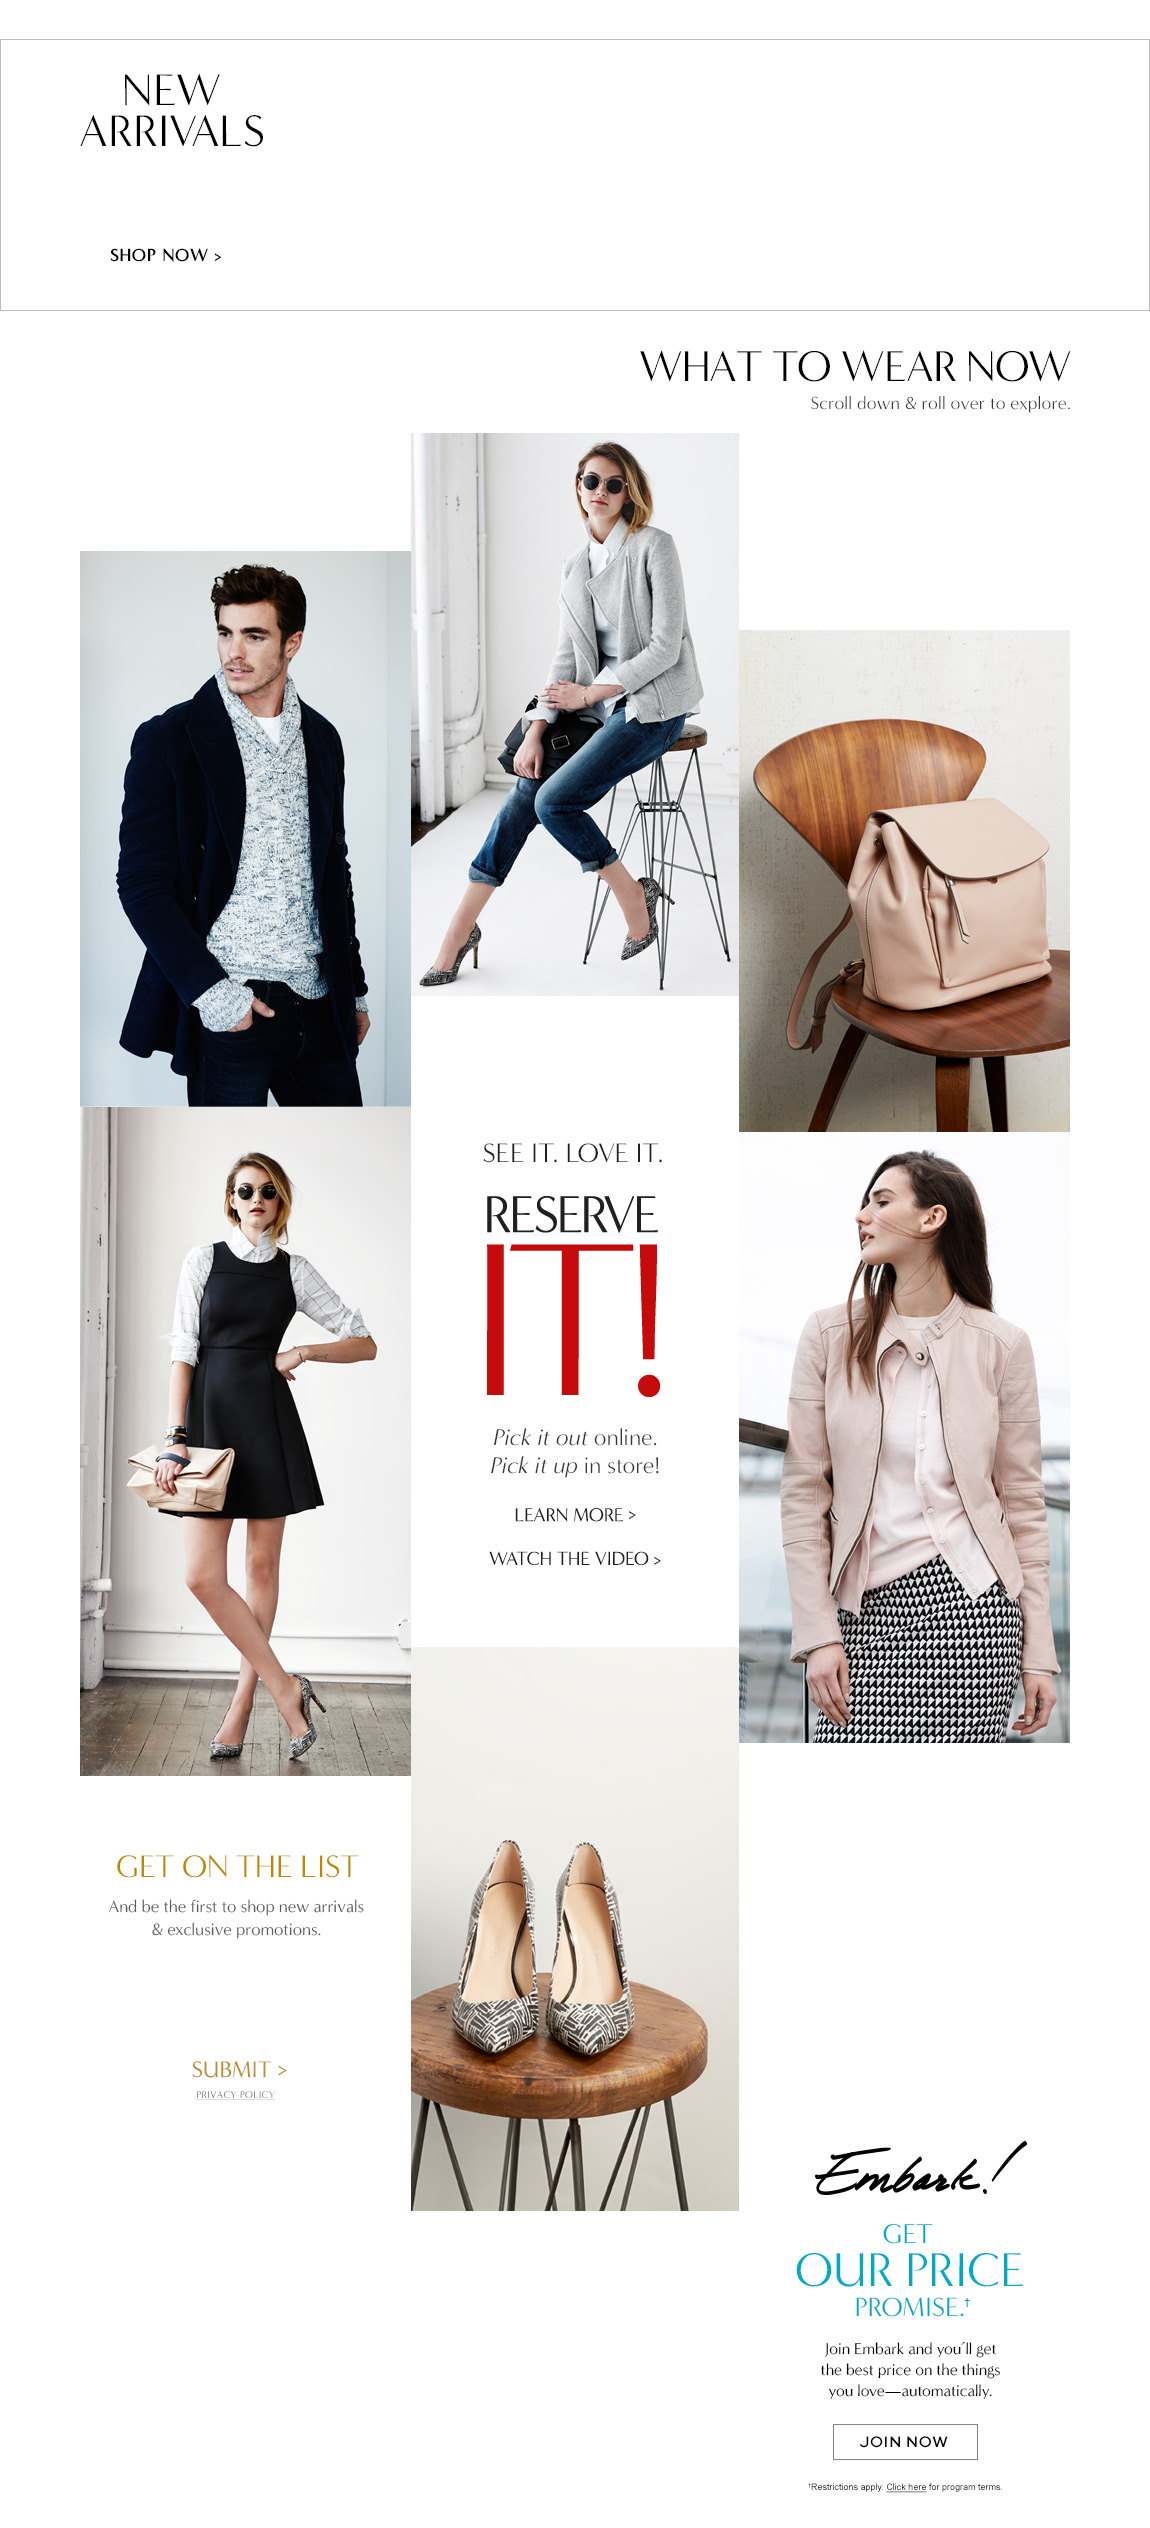 Clothes, shoes, and accessories for women and men